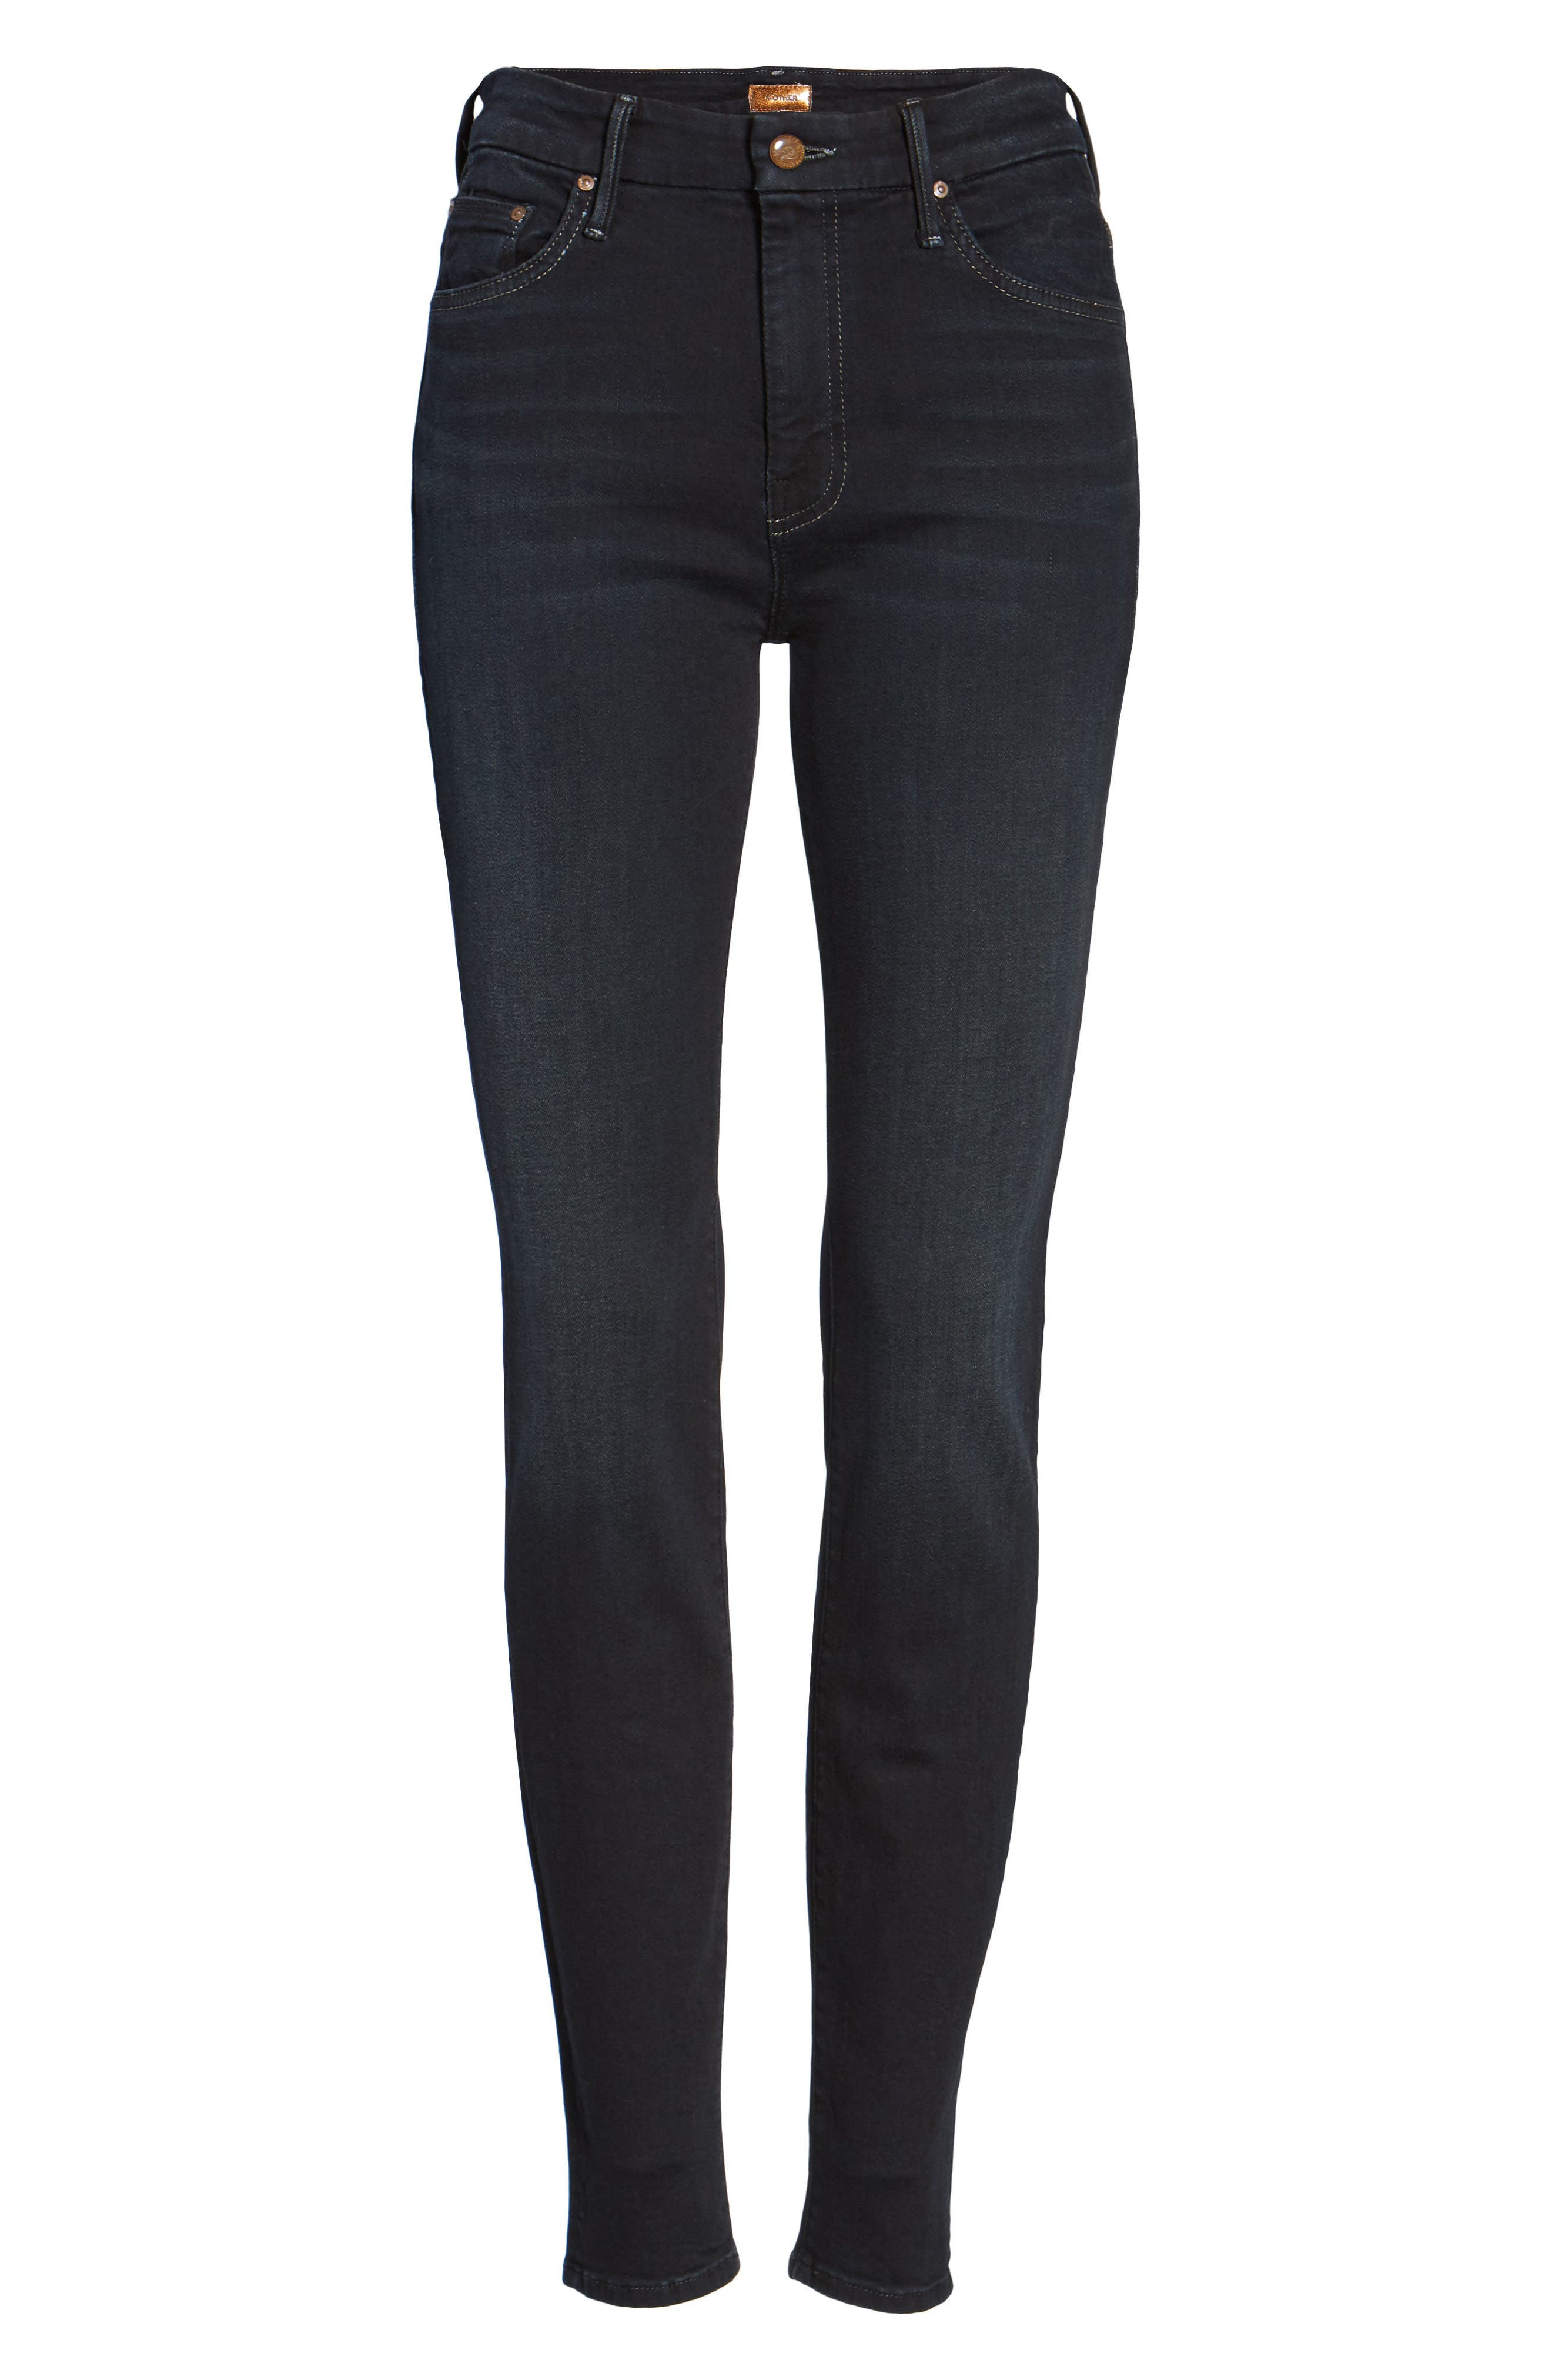 'The Looker' High Rise Skinny Jeans,                             Alternate thumbnail 7, color,                             COFFEE TEA OR ME